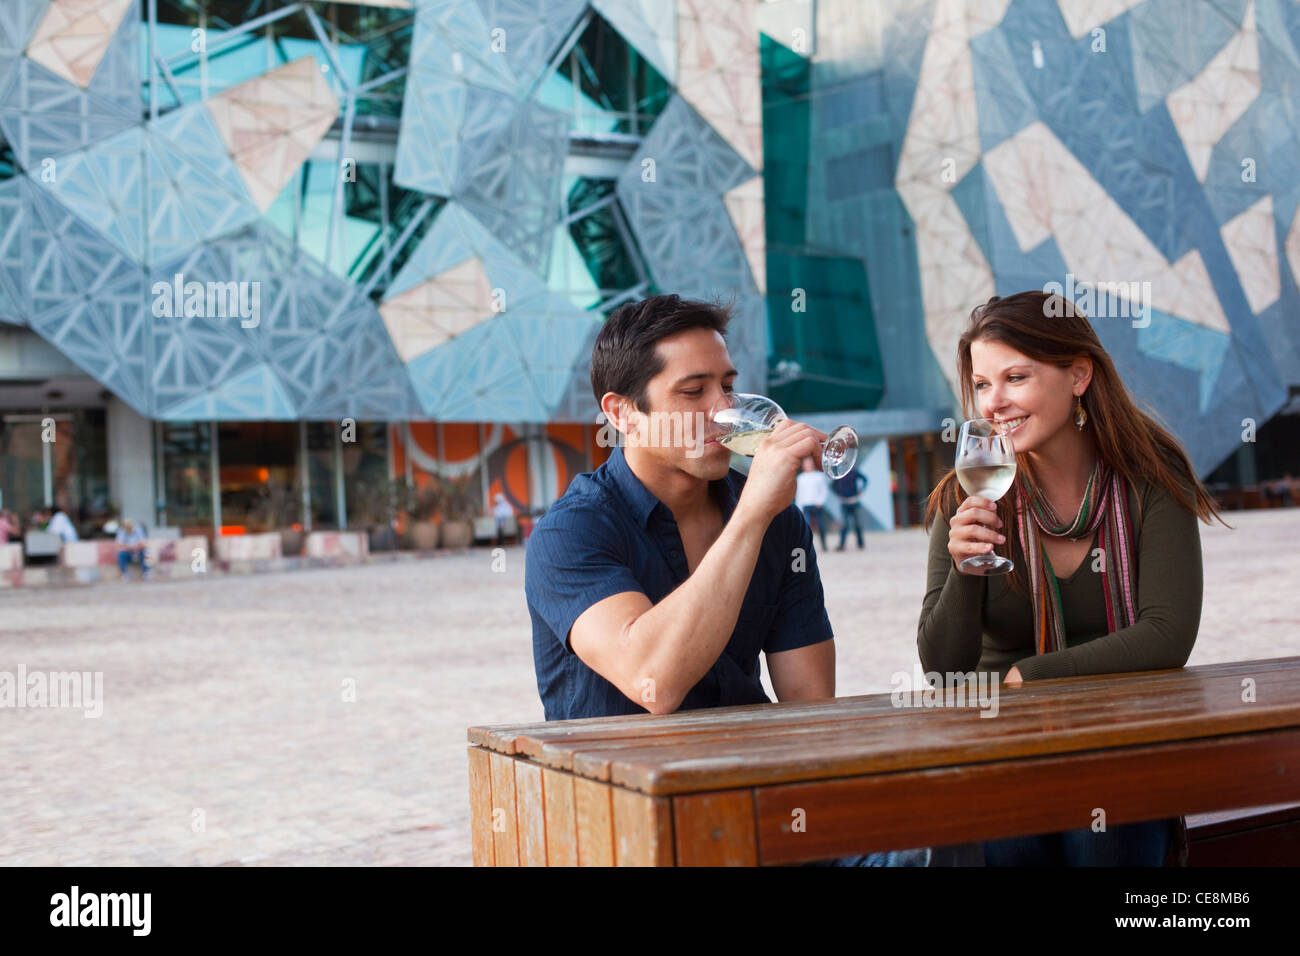 Young couple enjoying drink at an outdoor bar federation square melbourne victoria australia